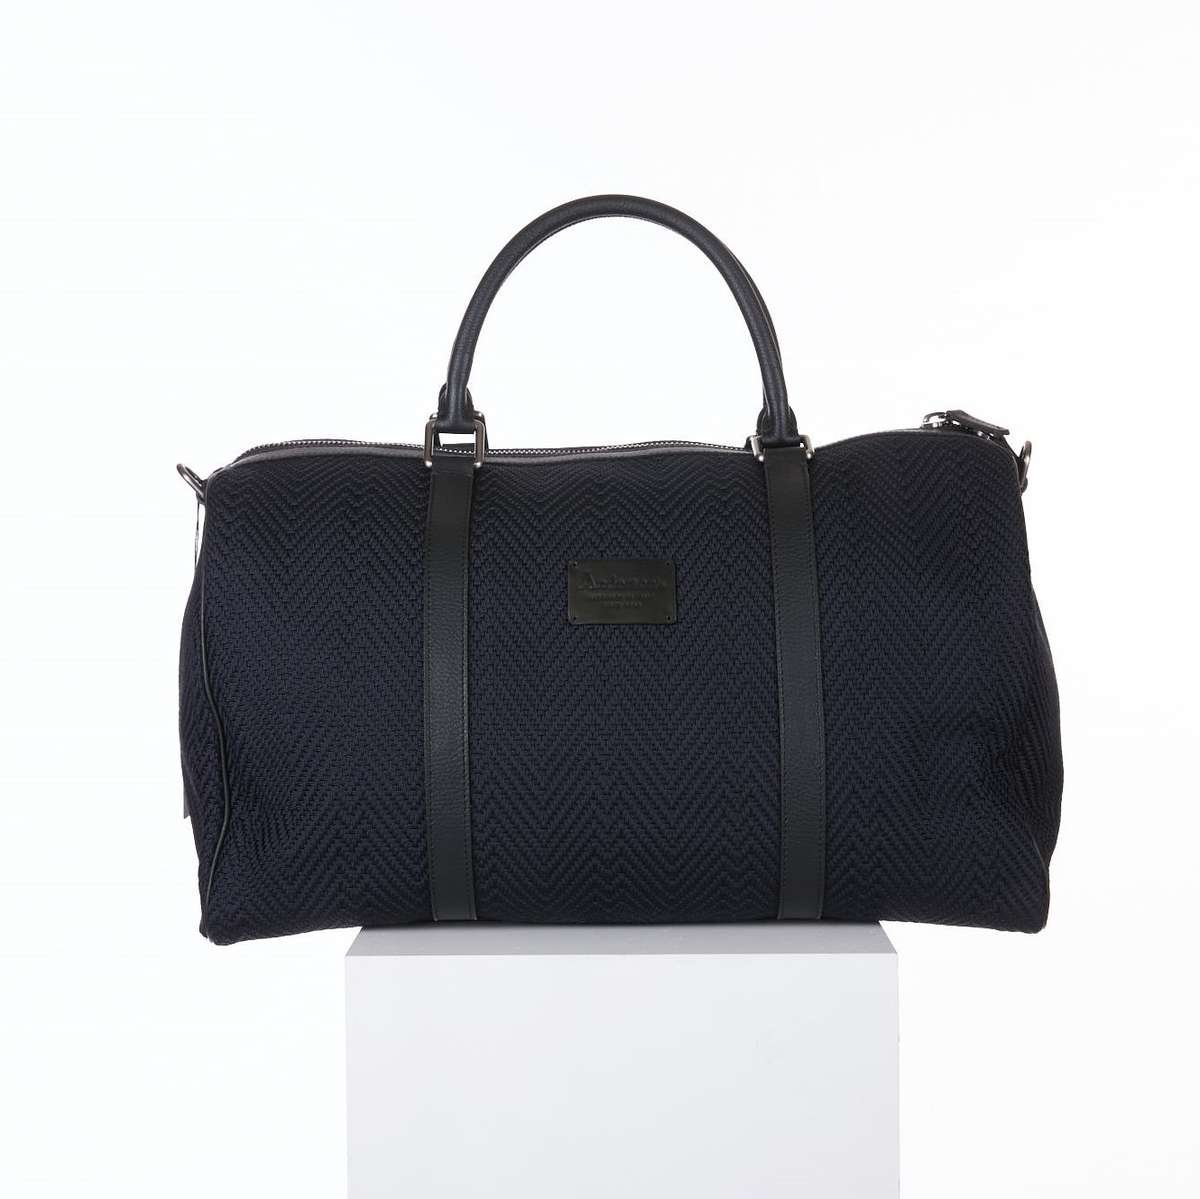 ANDERSON'S NAVY WOVEN DUFFLE BAG